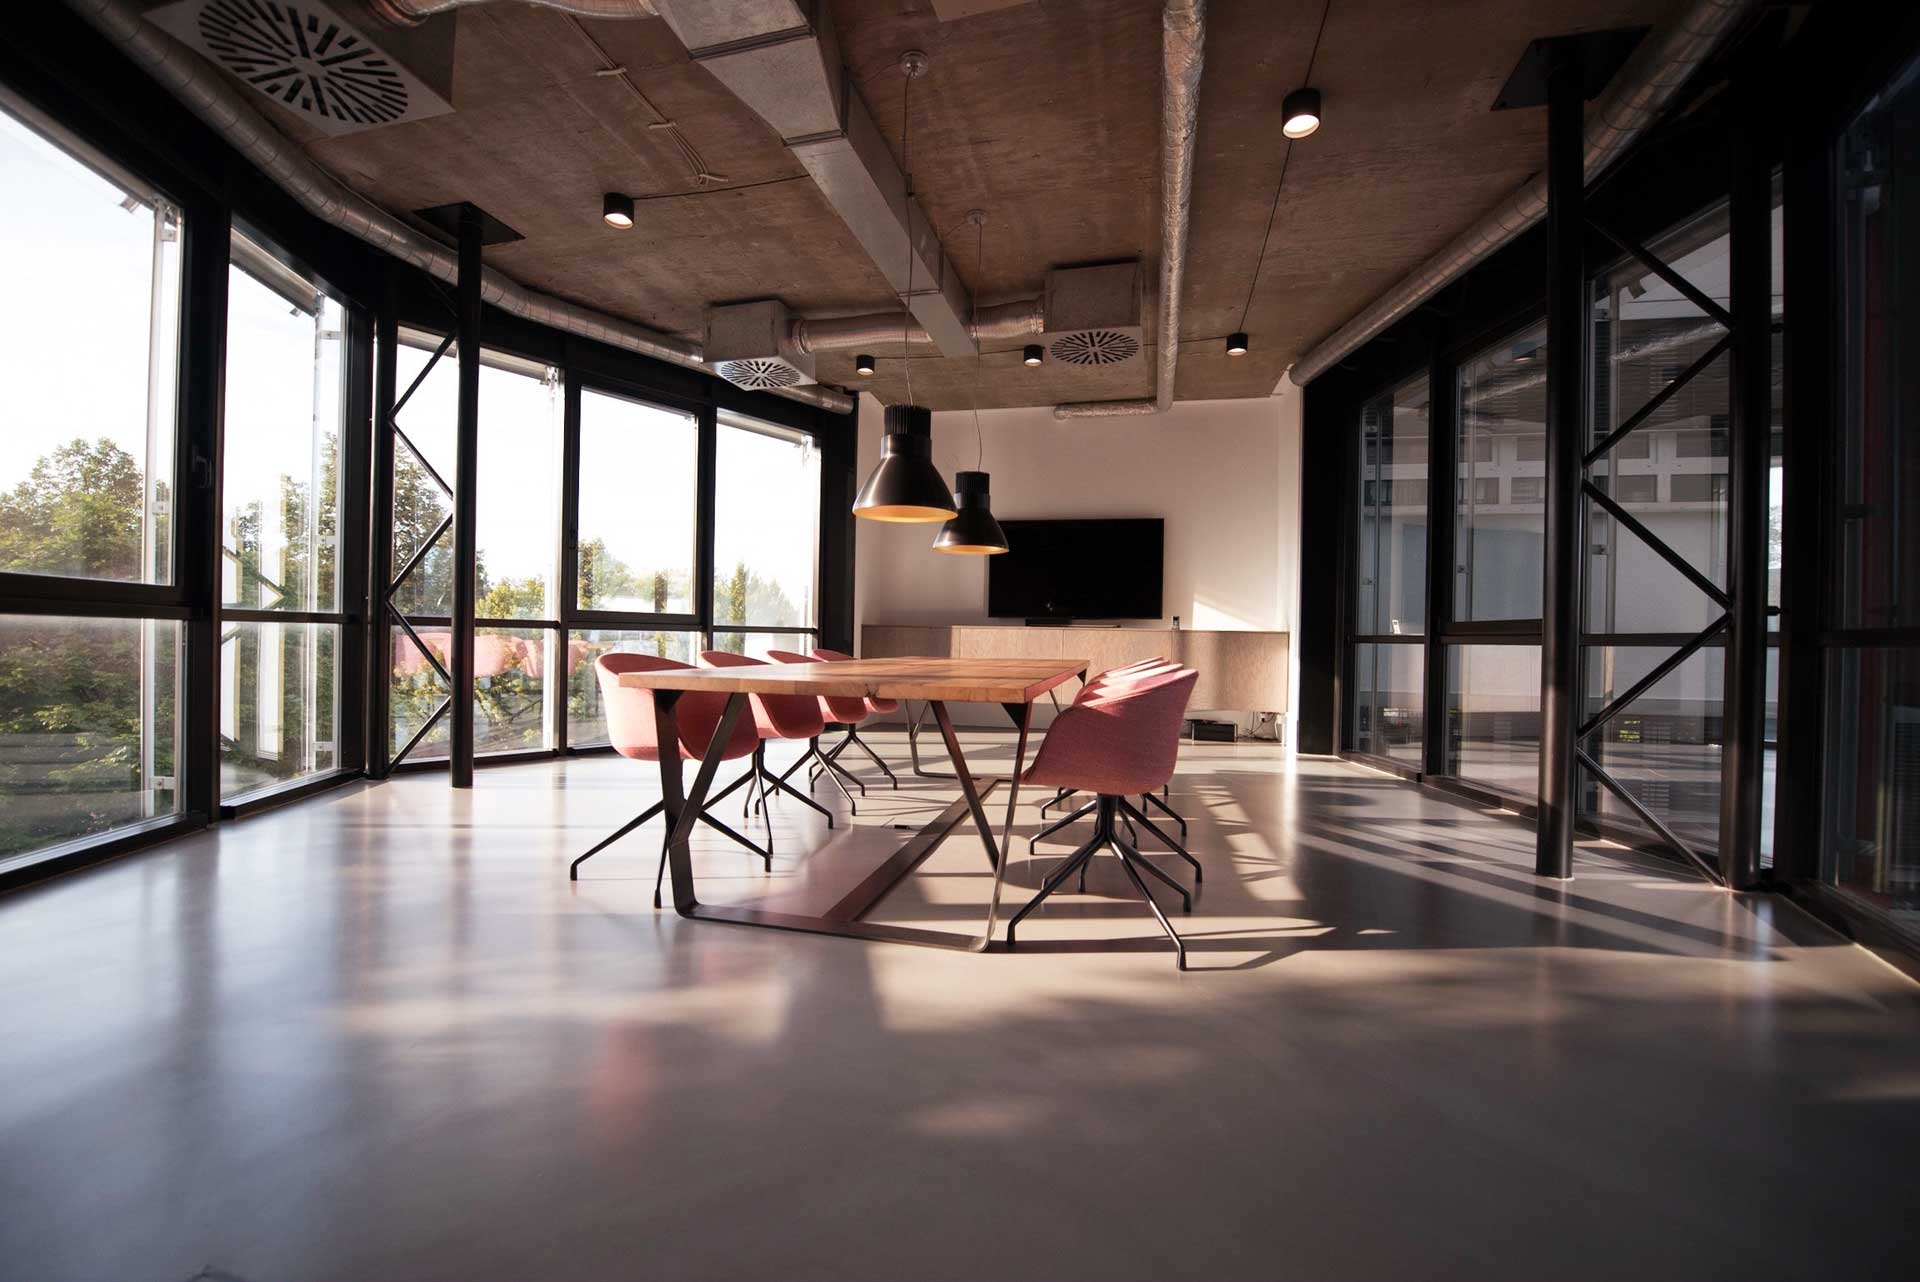 large office filled with sunlight and meeting table in the middle